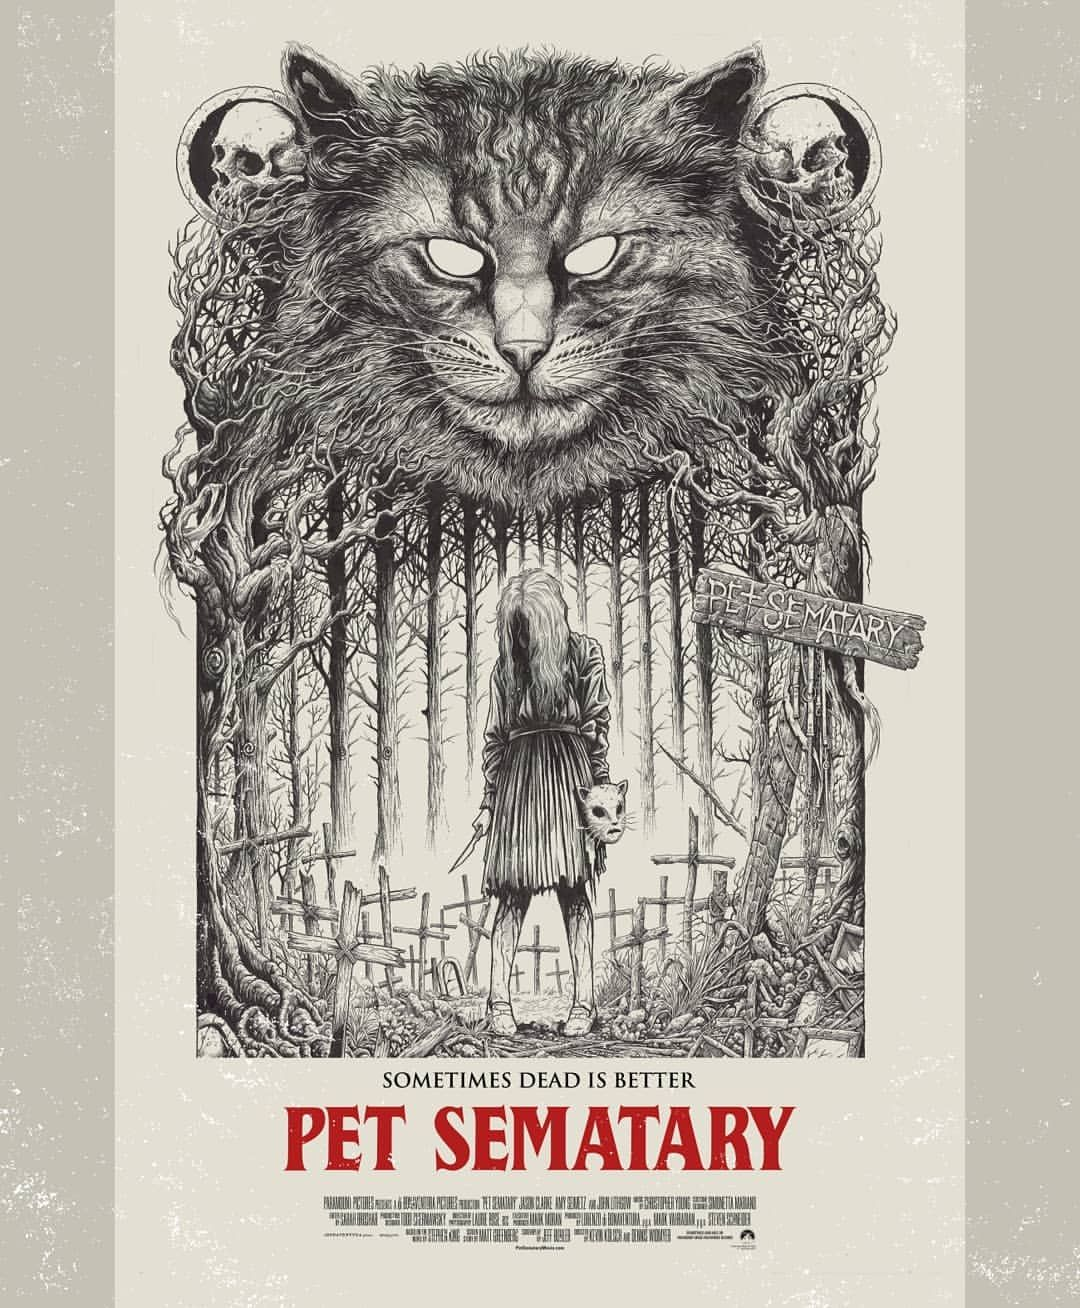 Pet Sematary Pet Sematary in 2019 Horror movie posters